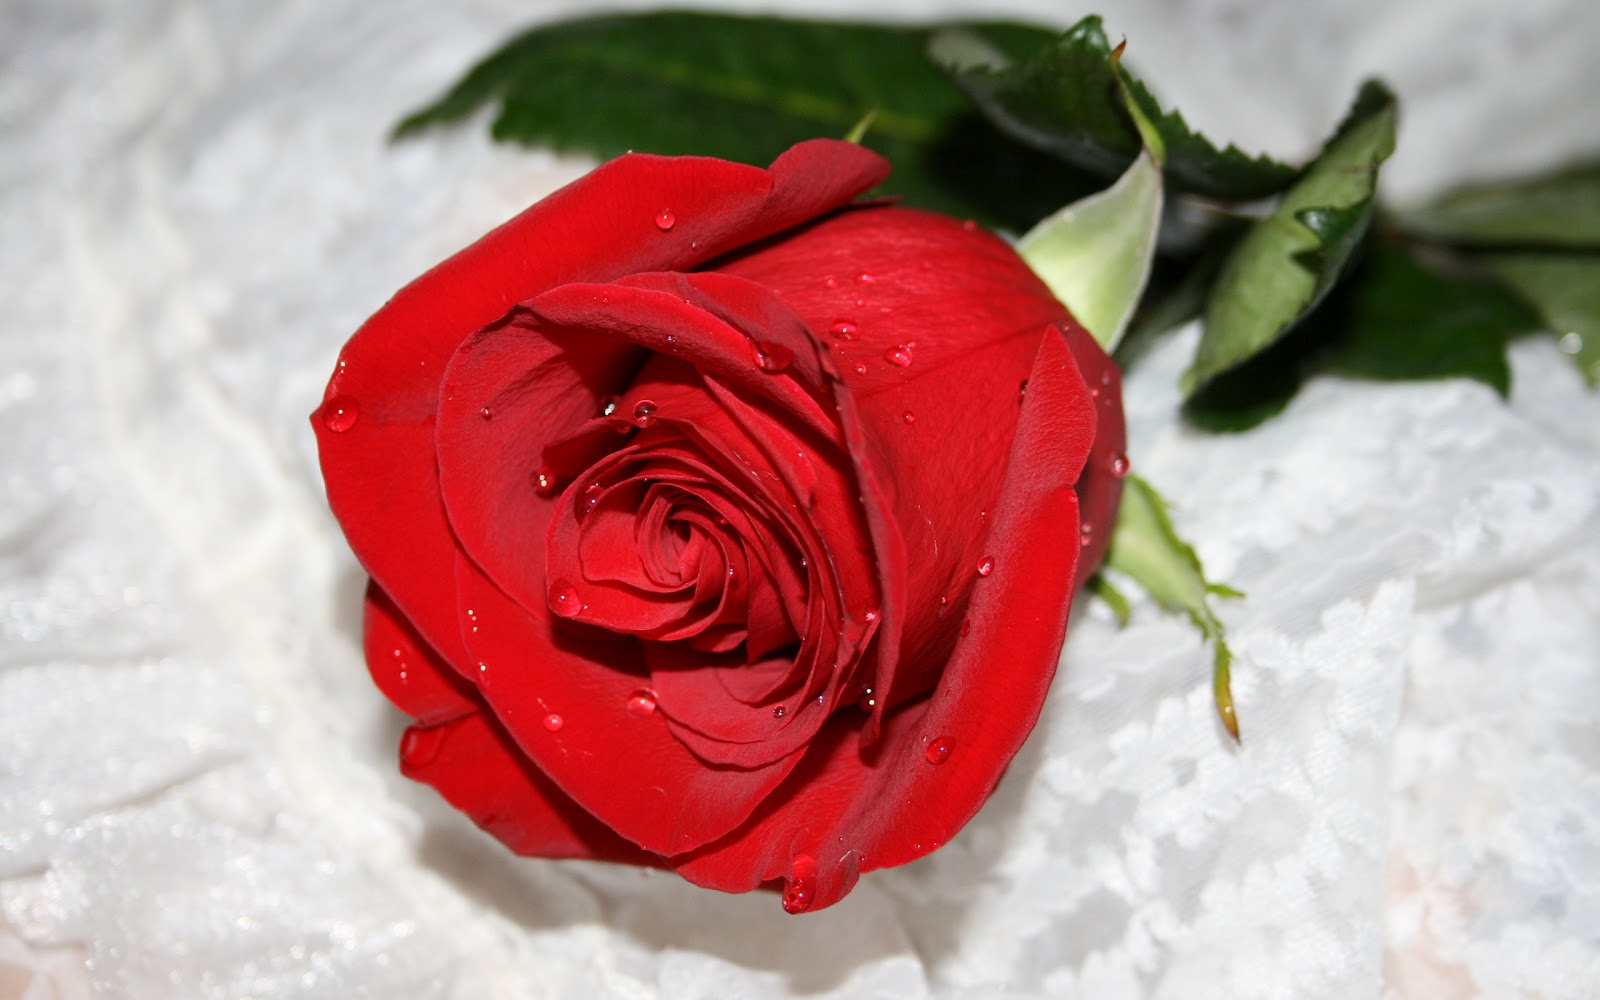 wallpapers4free red rose background flower love free